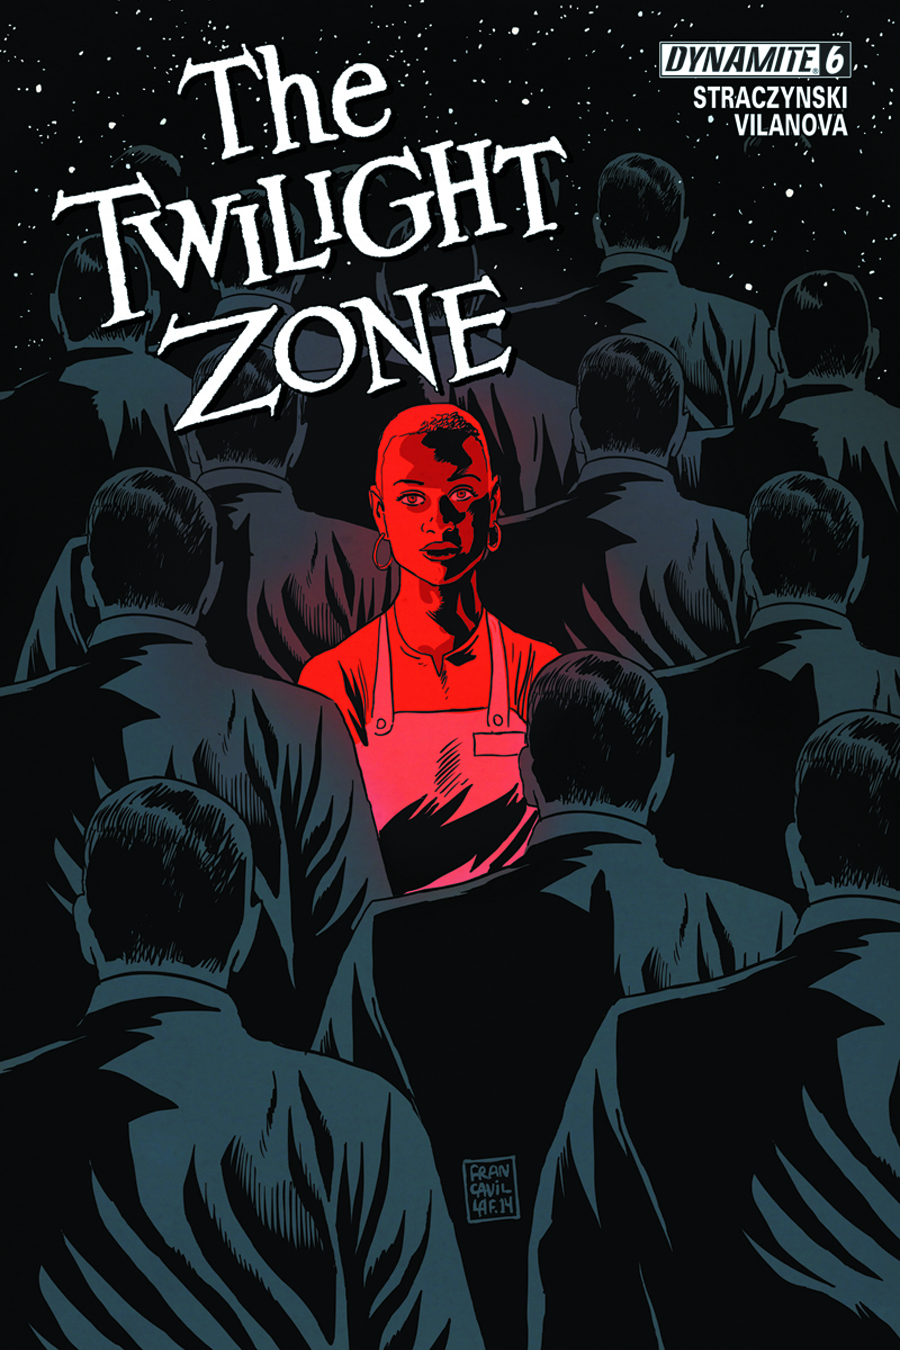 TWILIGHT ZONE #6